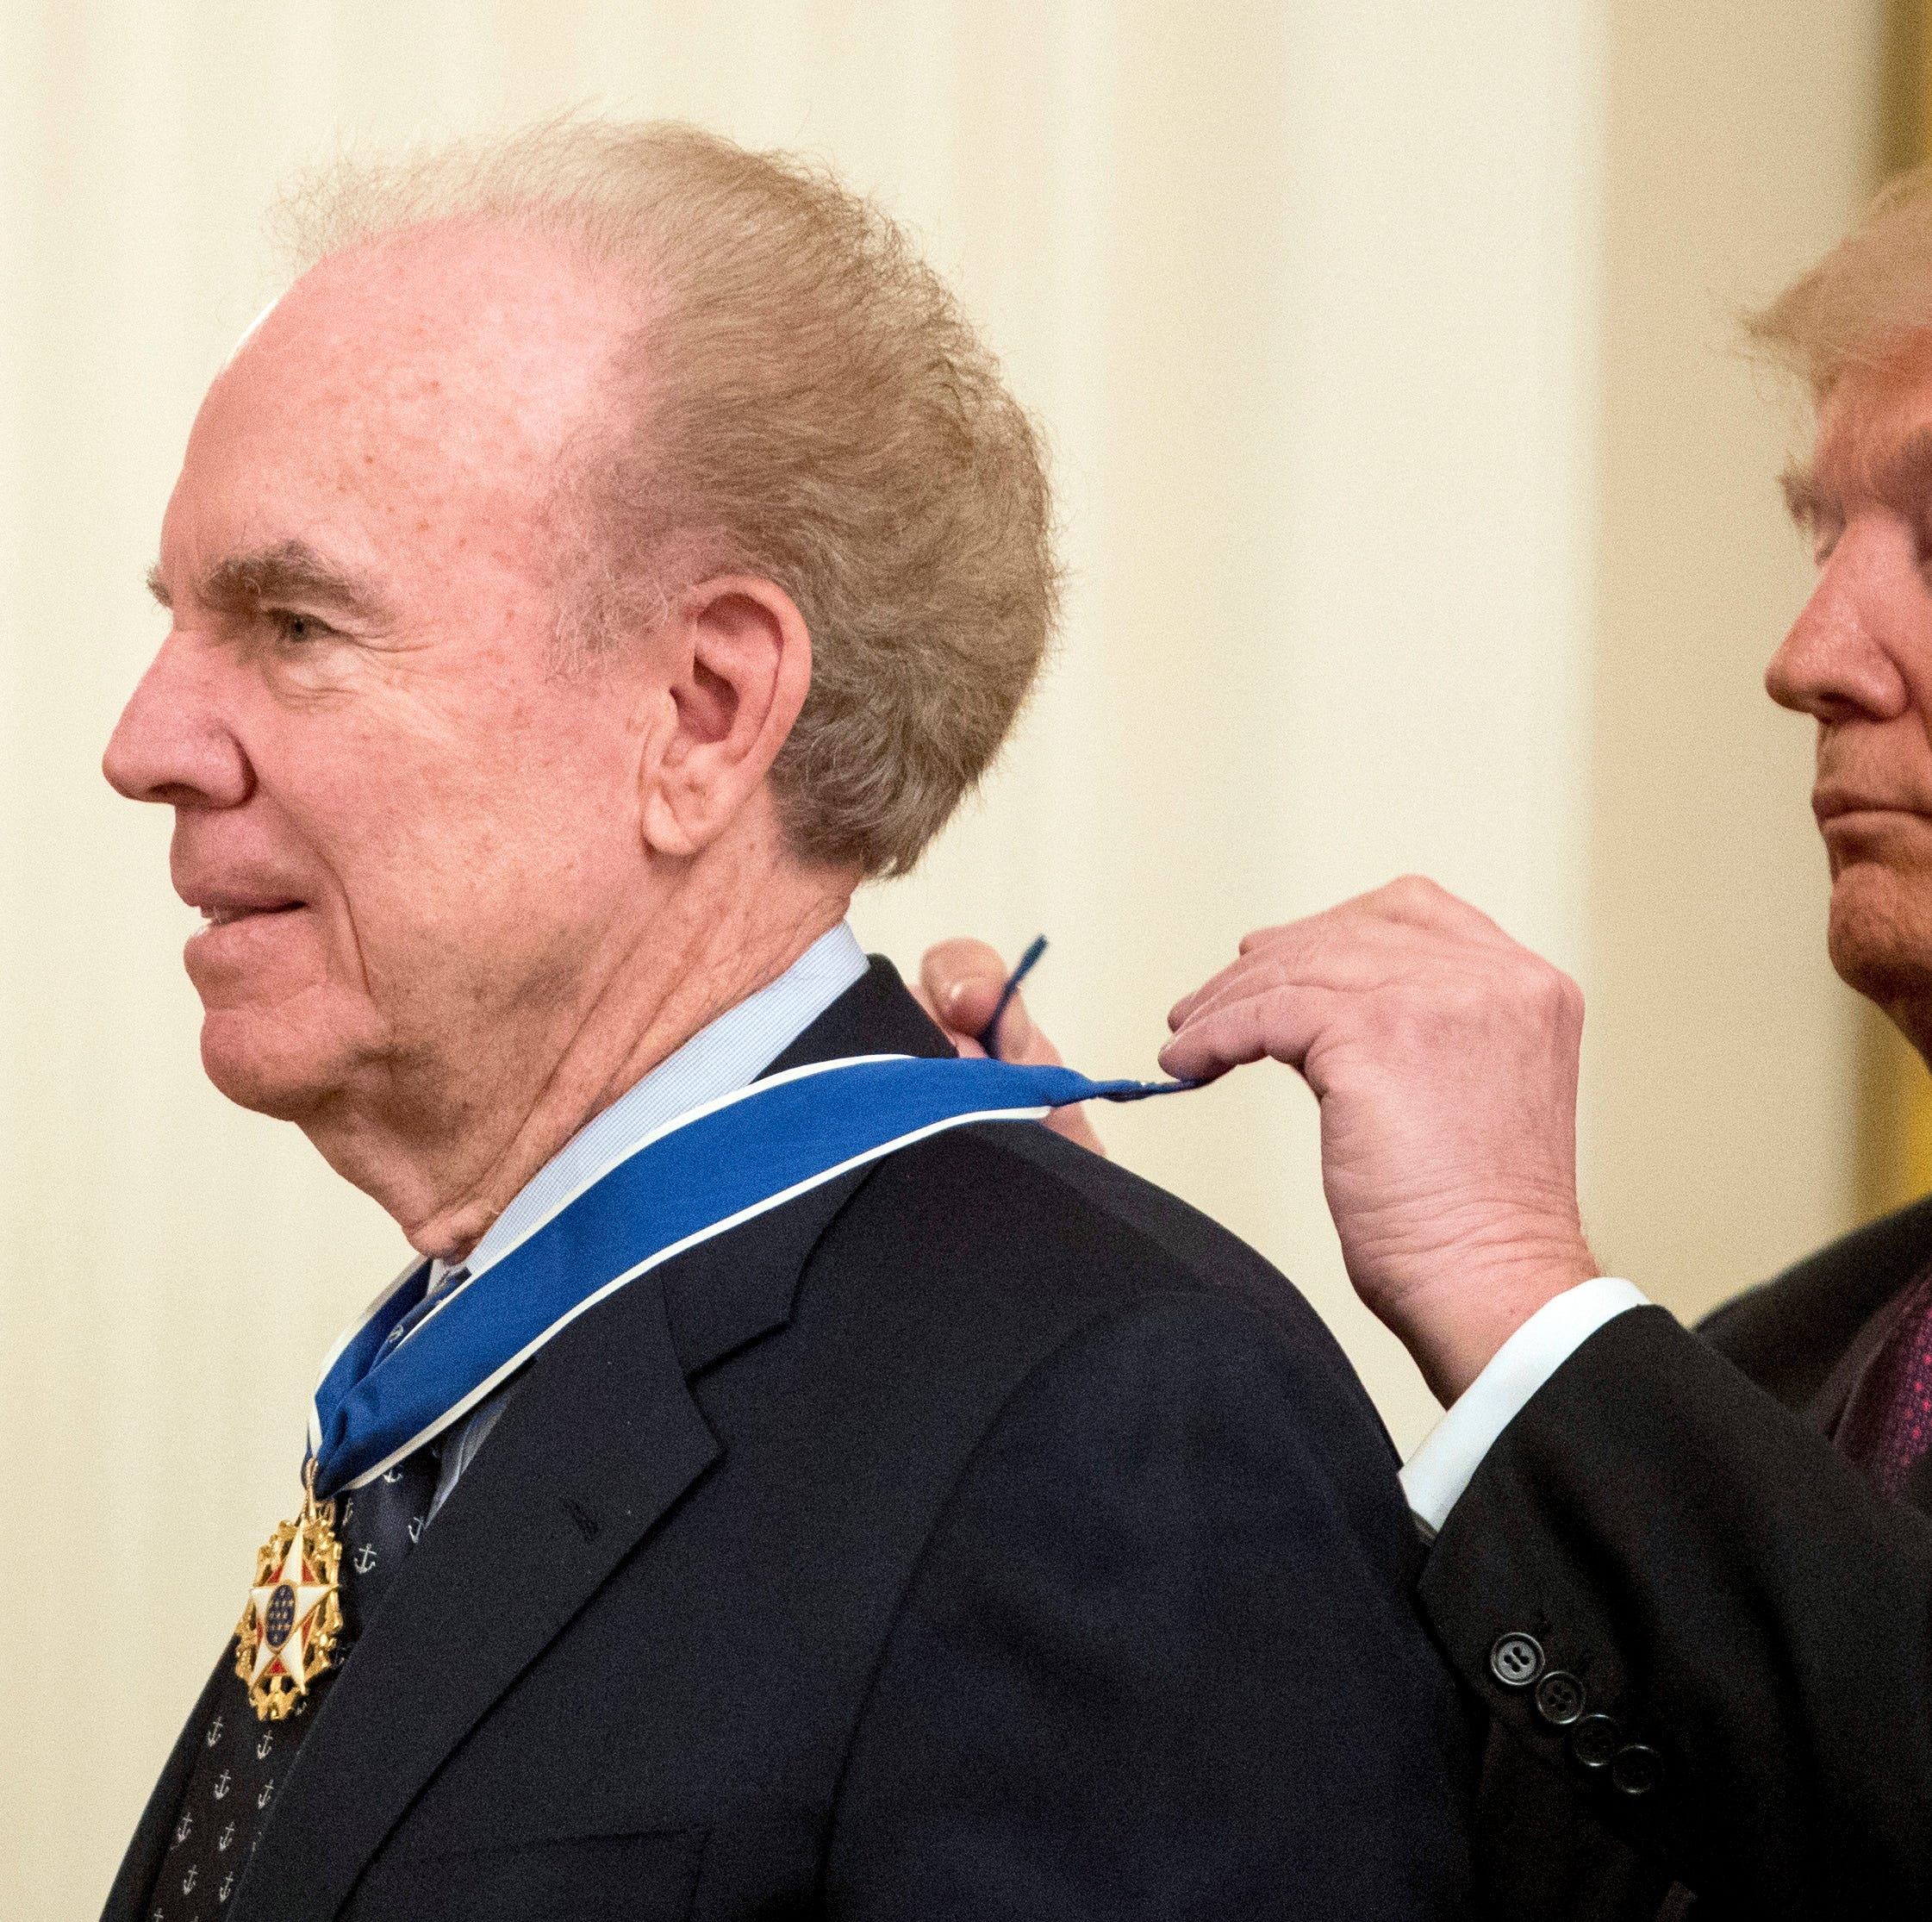 Dallas Cowboys great Roger Staubach among 7 given Presidential Medal of Freedom by Trump